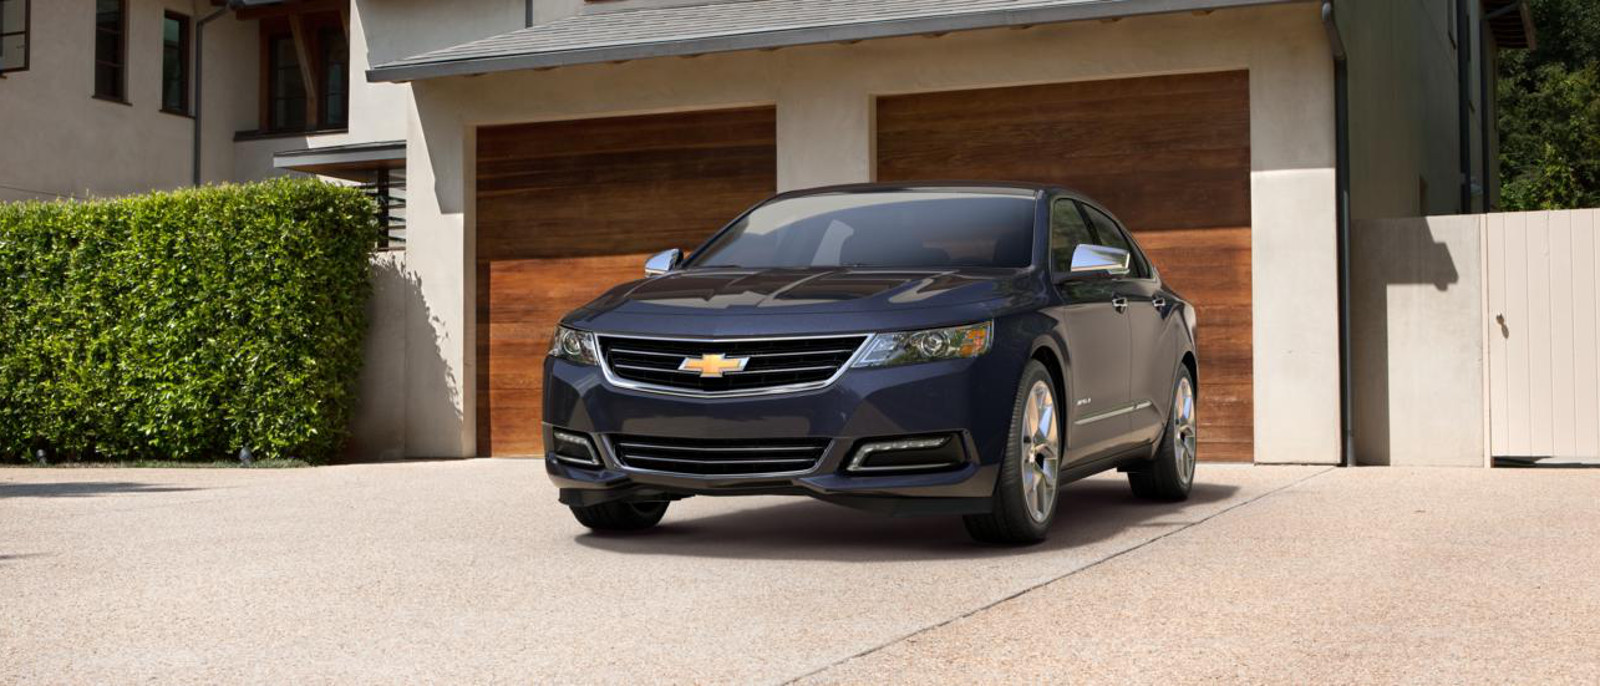 2015 Chevrolet Impala parked by garage